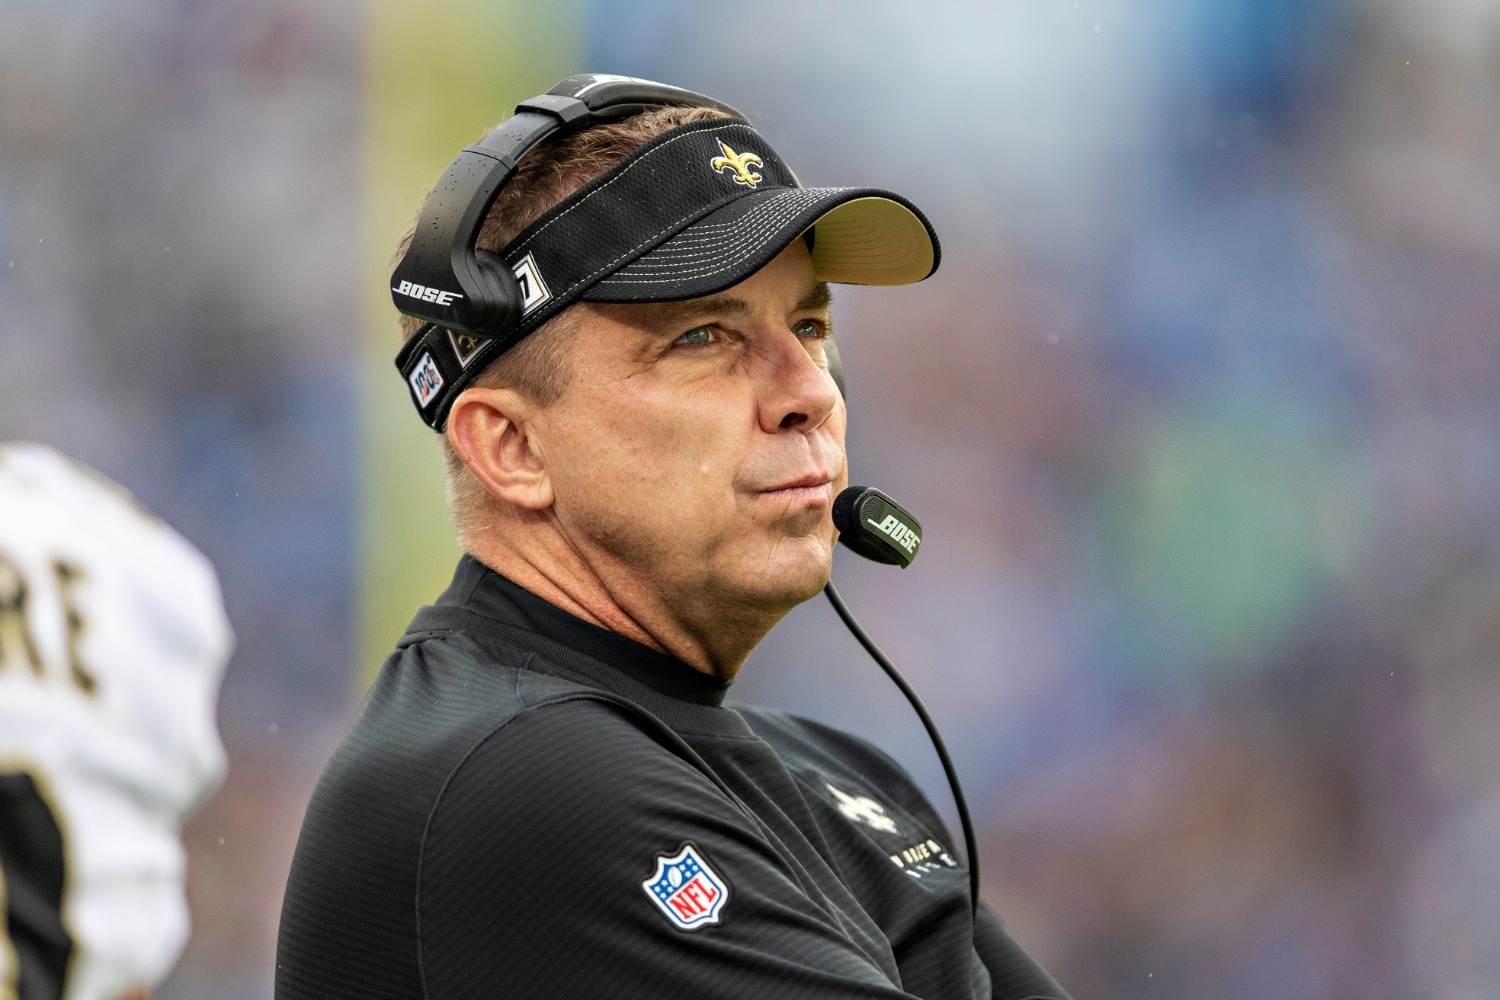 Saints head coach Sean Payton came up with a creative idea to send a message about the Jacob Blake shooting.